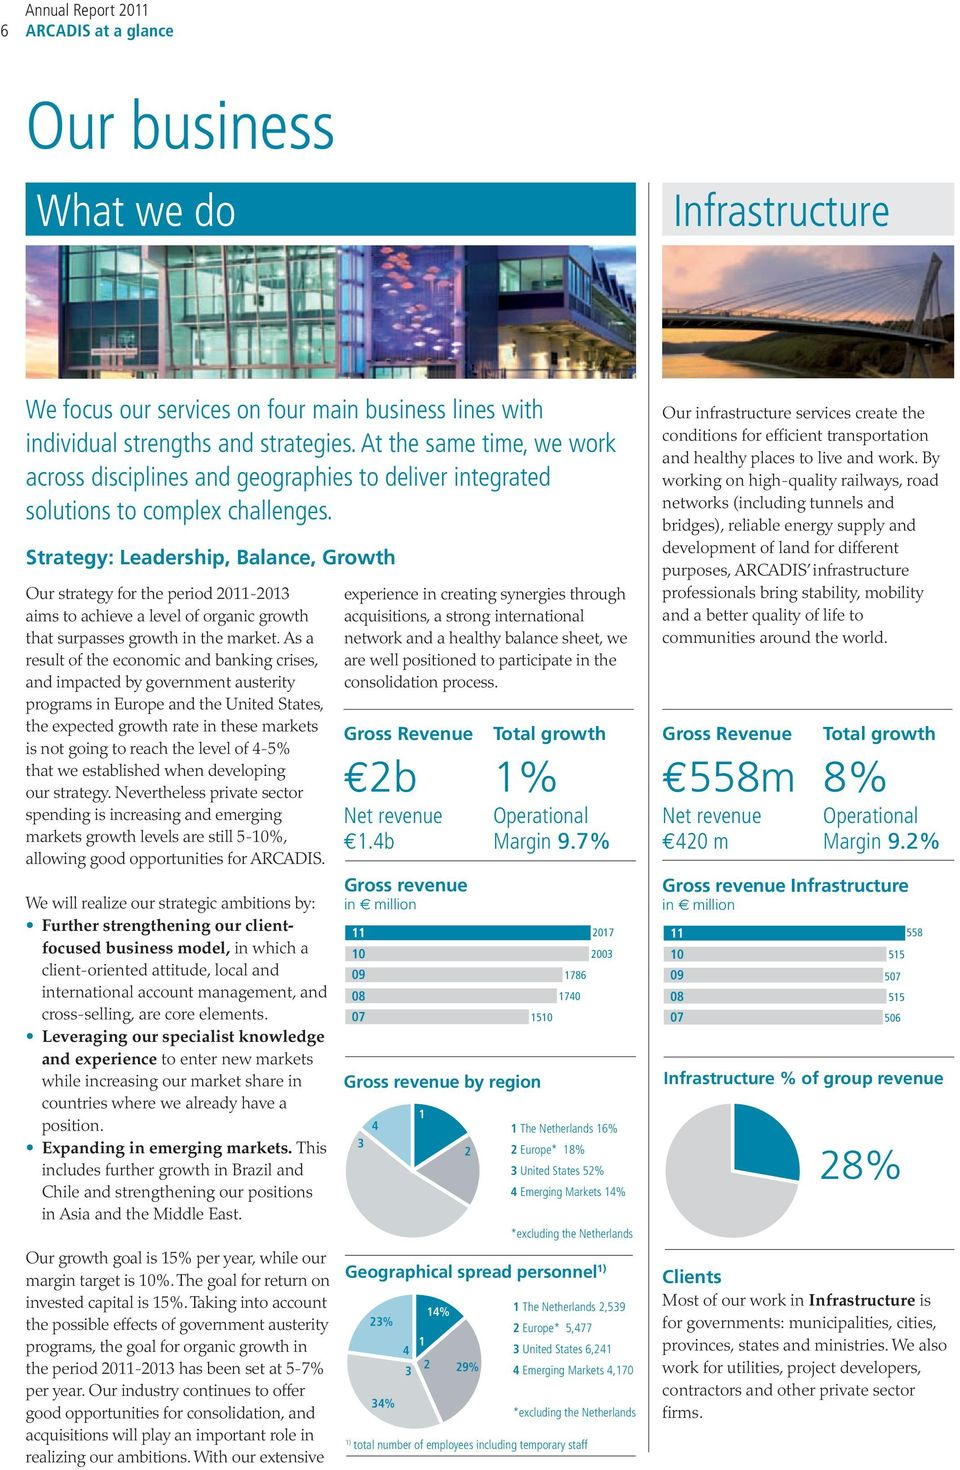 Strategy: Leadership, Balance, Growth Our strategy for the period 2011-2013 aims to achieve a level of organic growth that surpasses growth in the market.